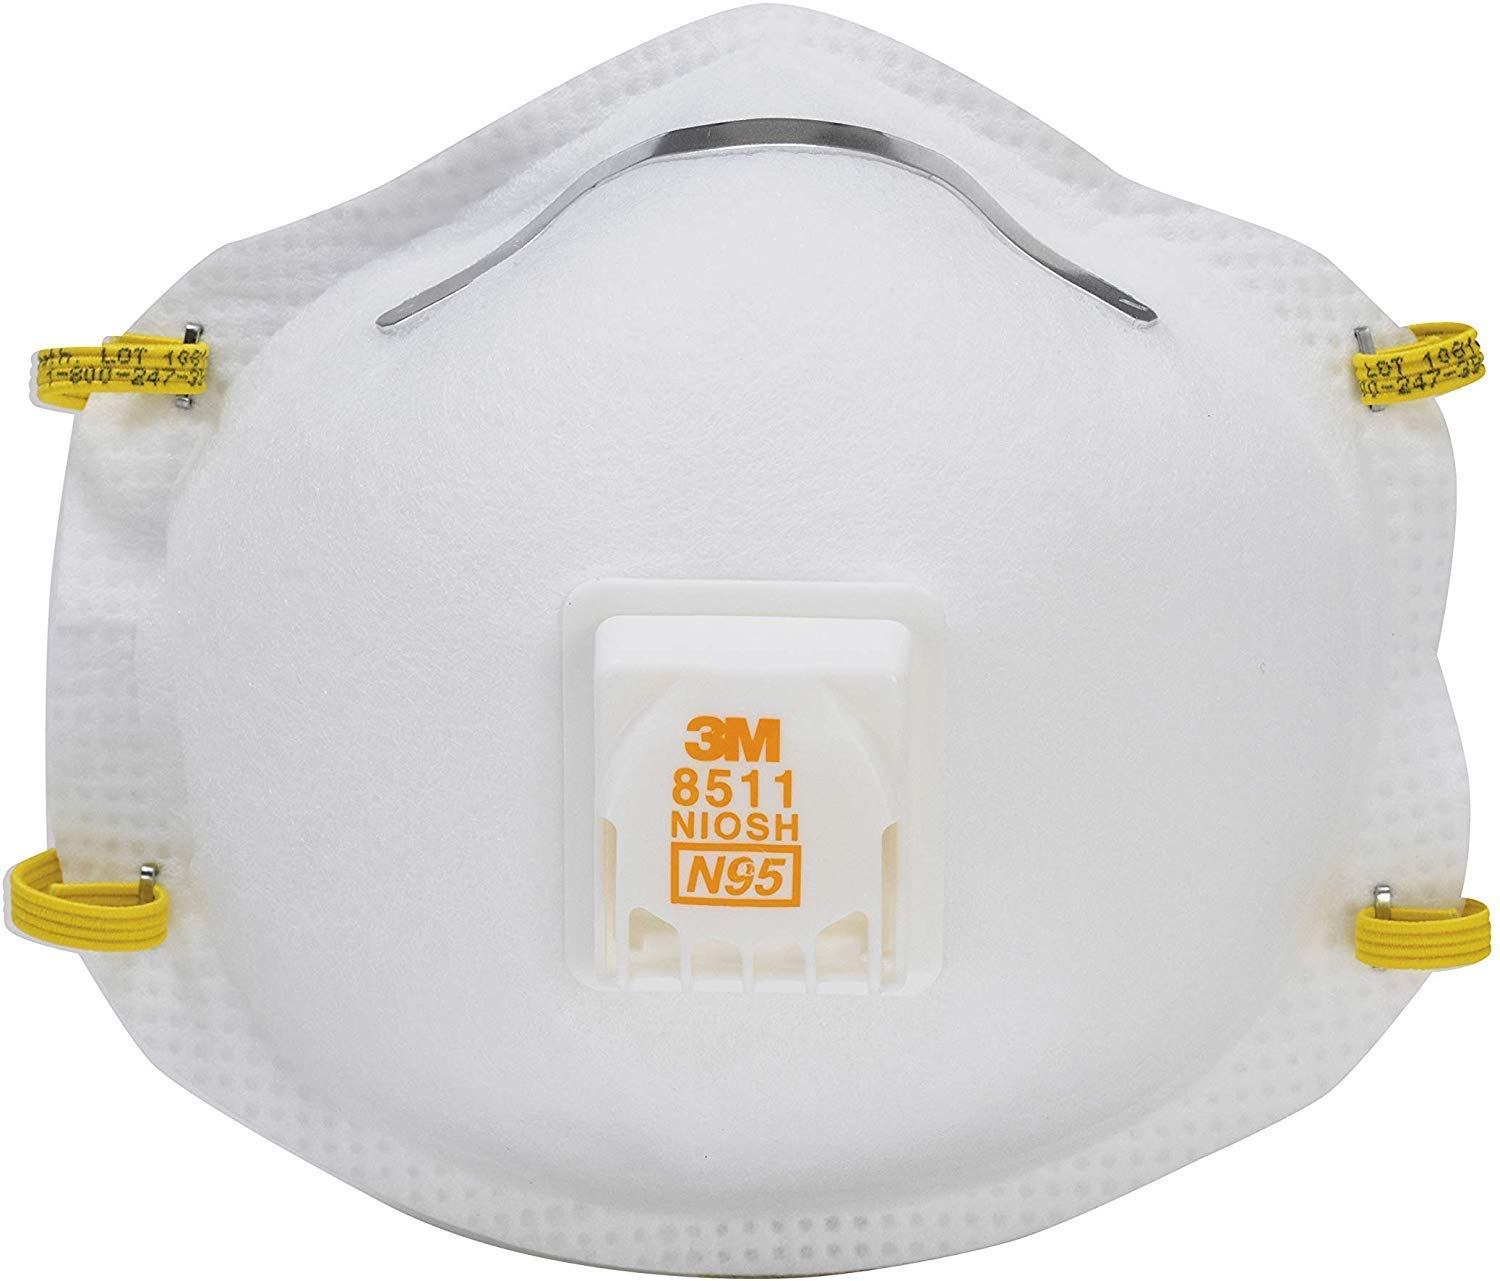 3M 8511 Respirator, N95, Cool Flow Valve (10 Pack)